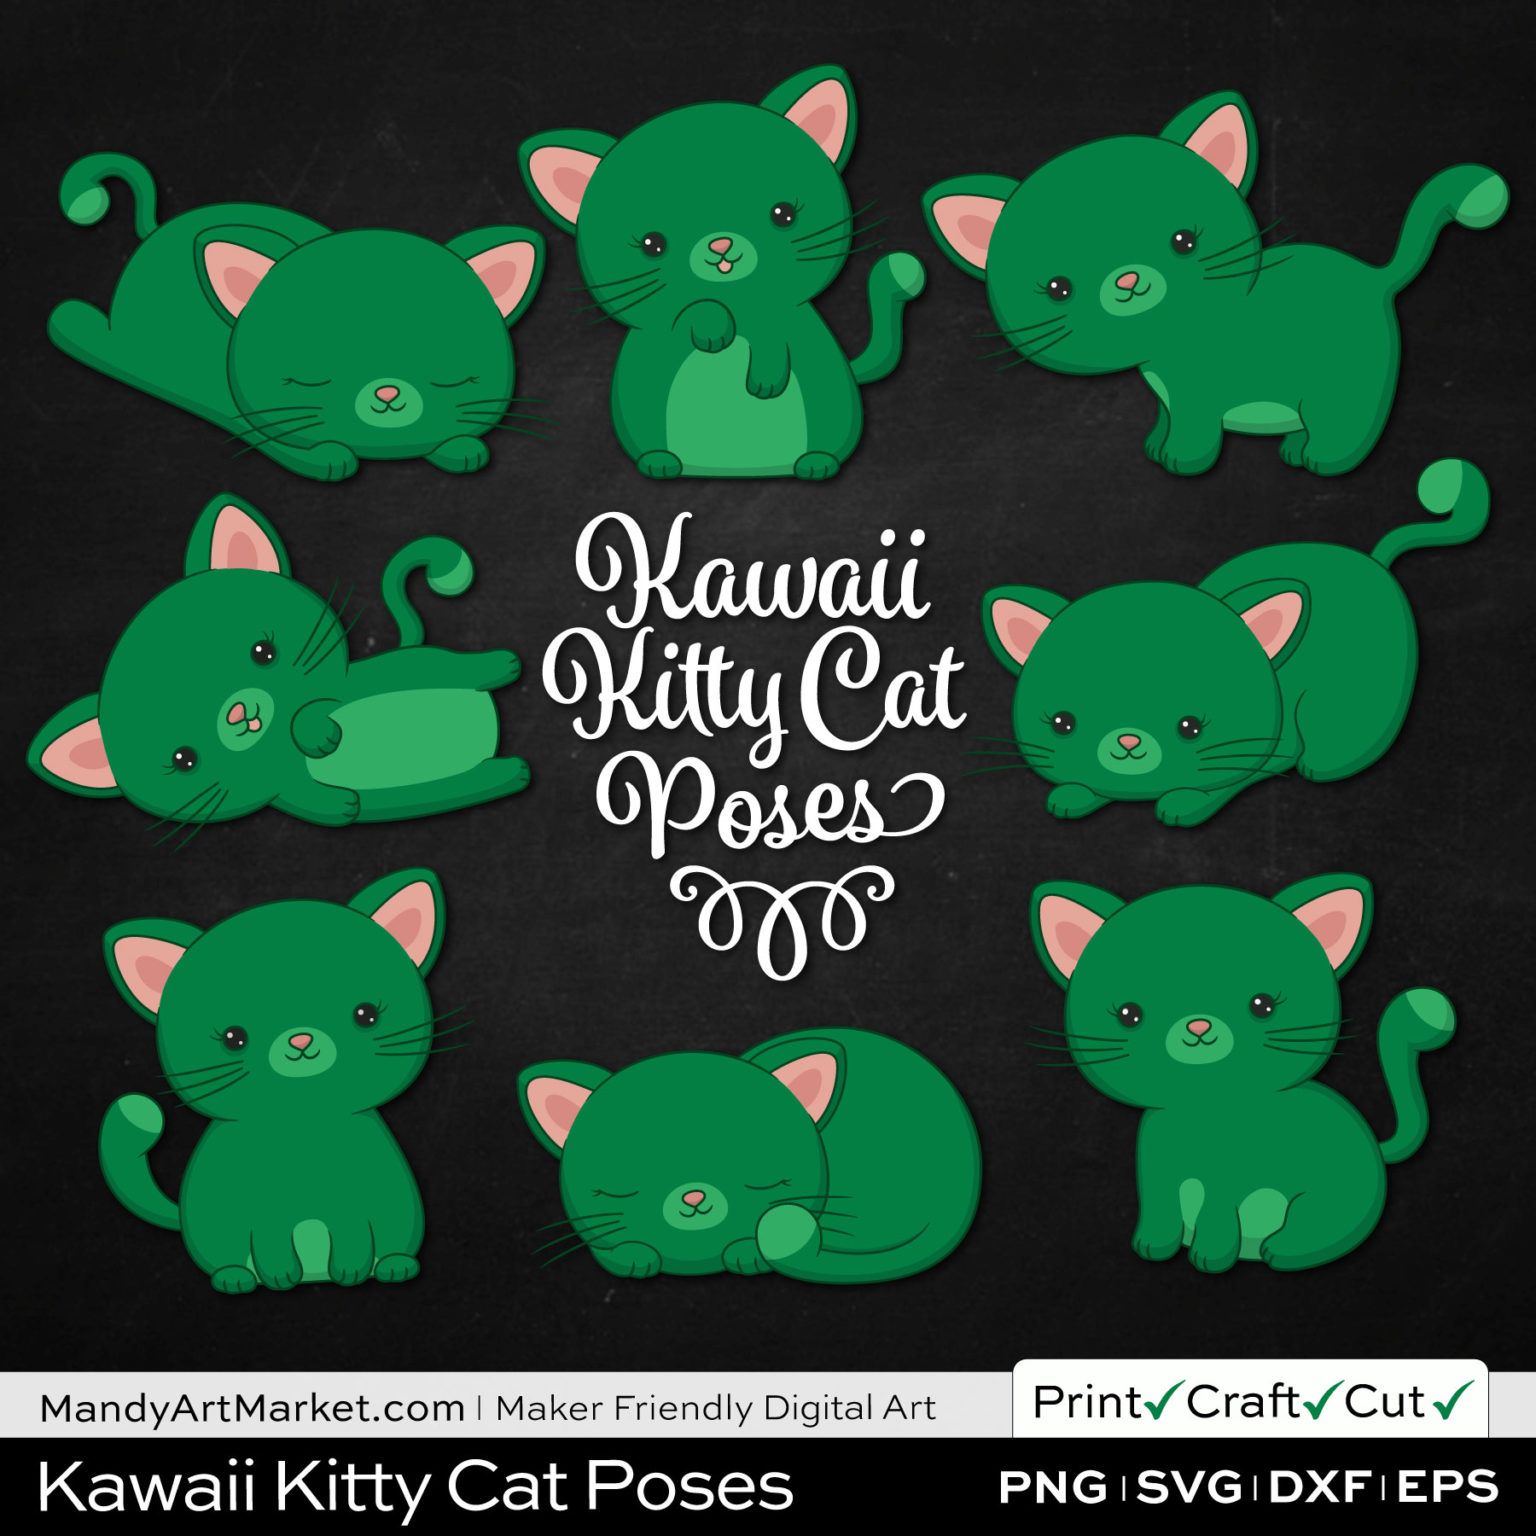 Emerald Green Kawaii Kitty Cat Poses Clipart on Black Background